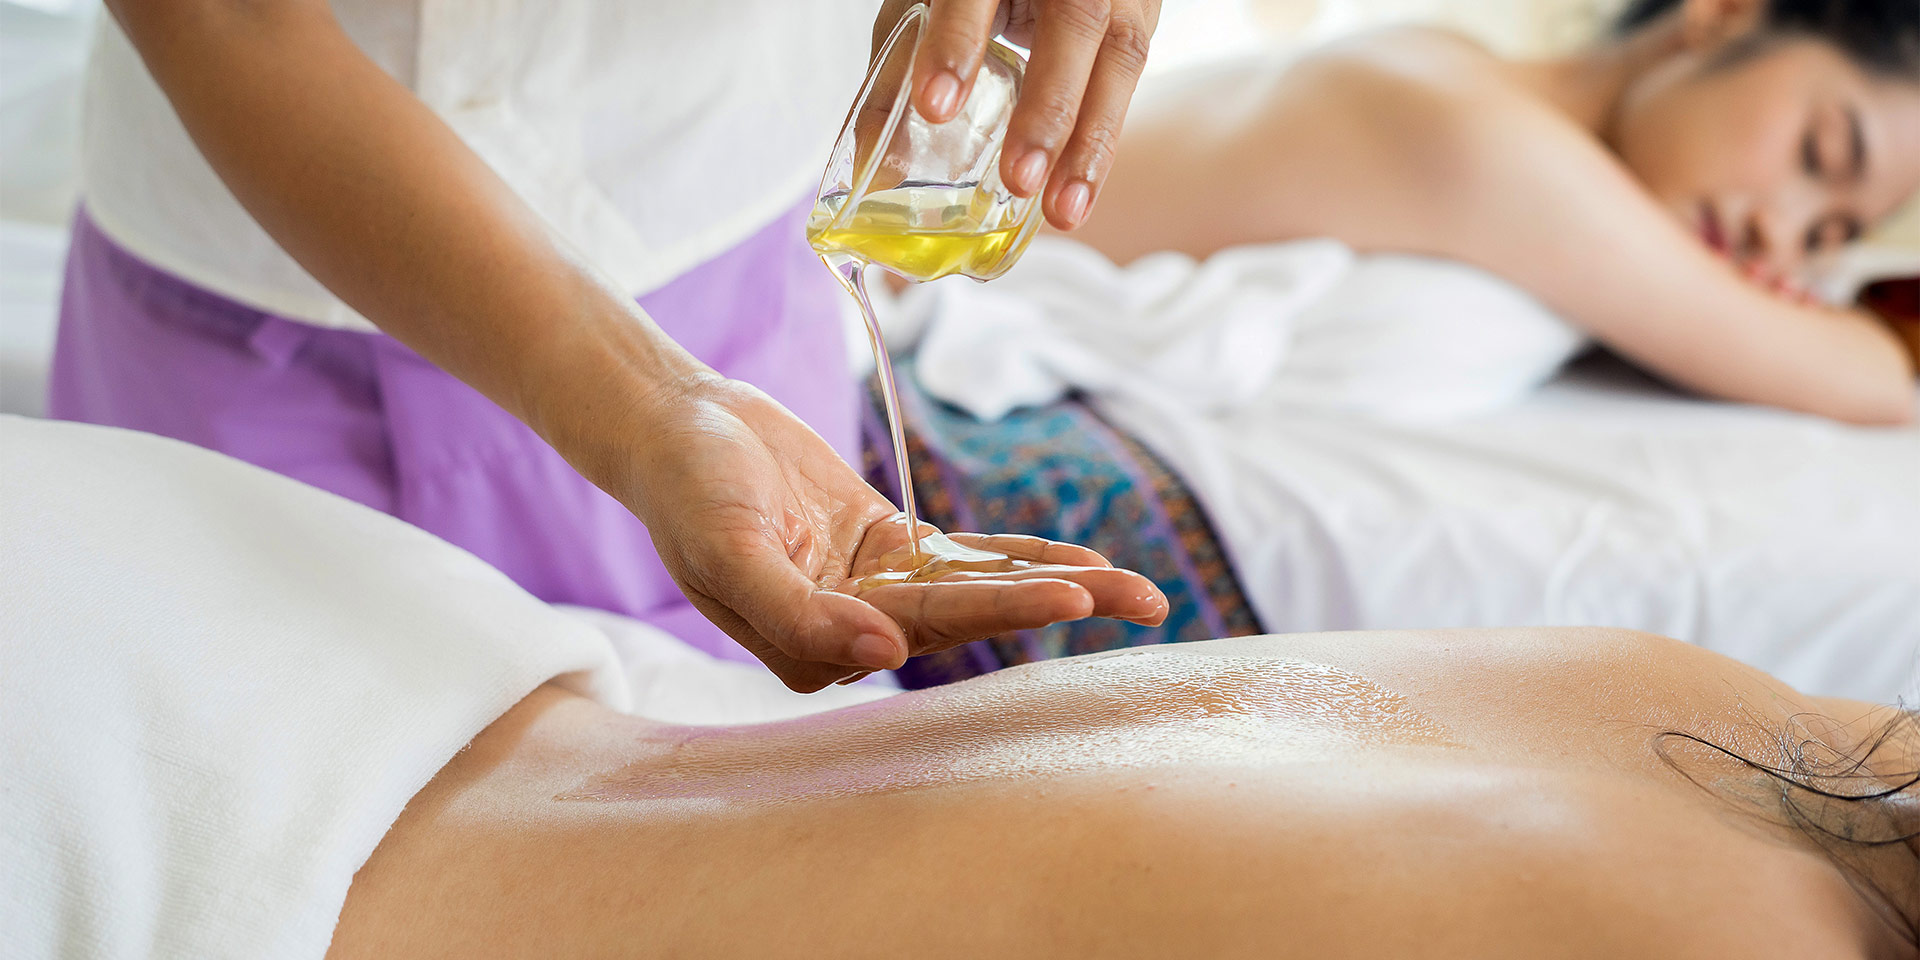 Massaging oil into a client's back.